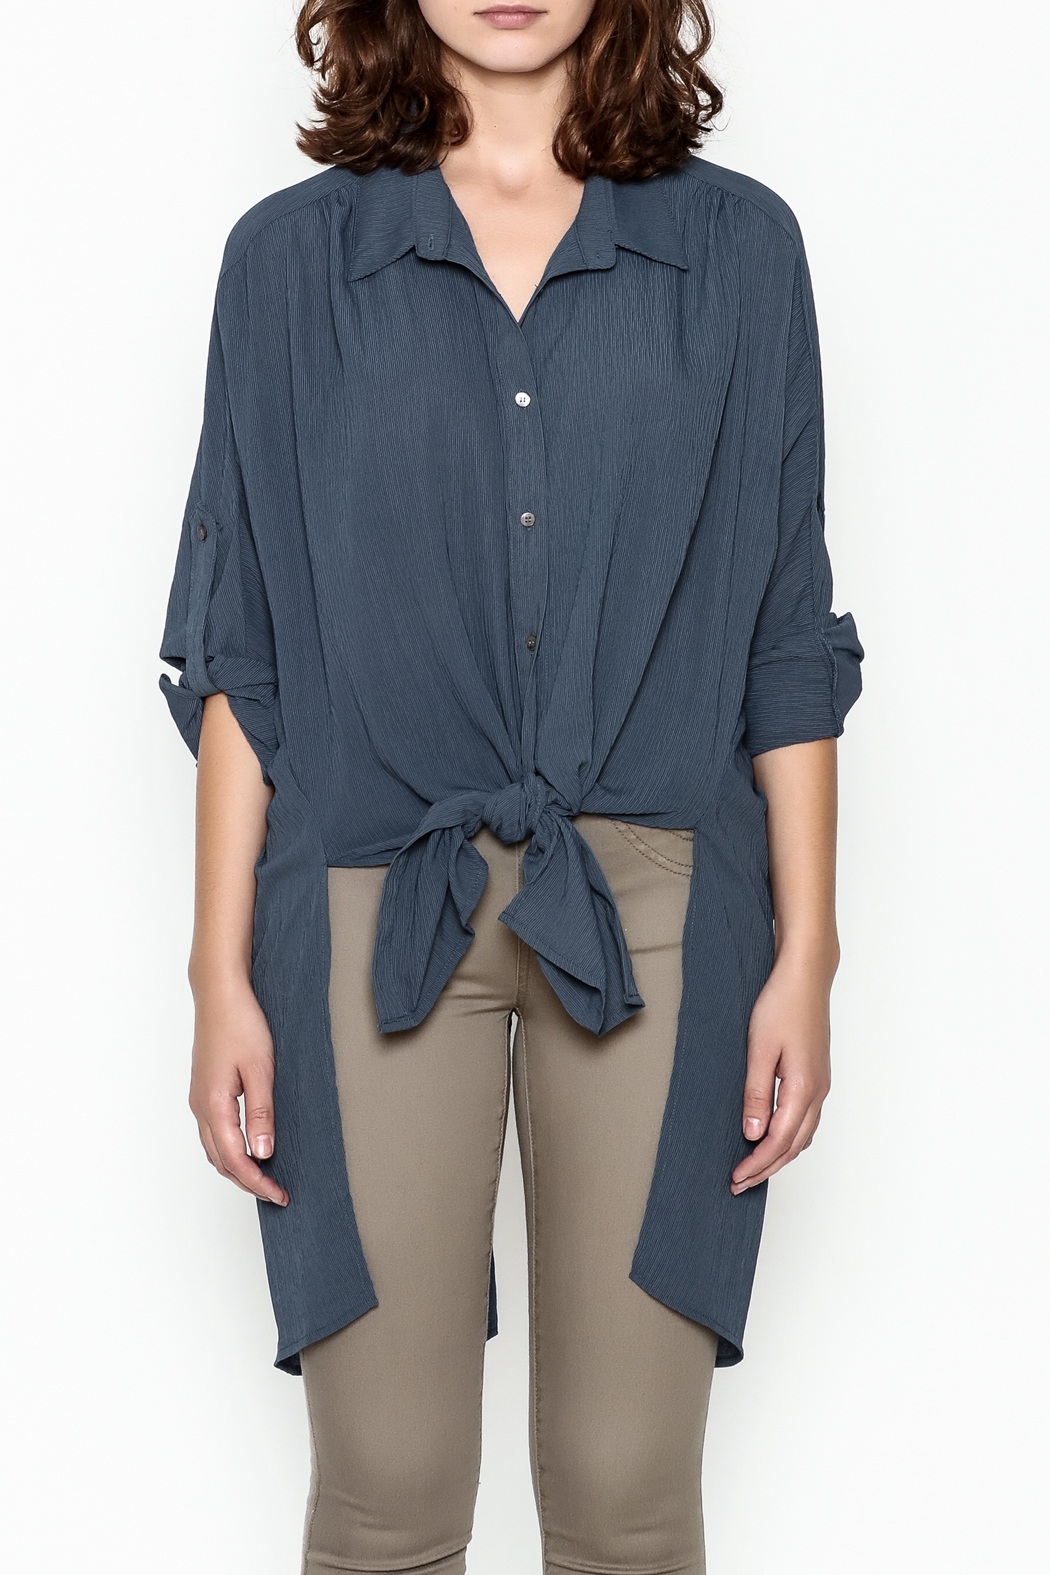 Umgee USA Navy Tie Blouse - Front Full Image